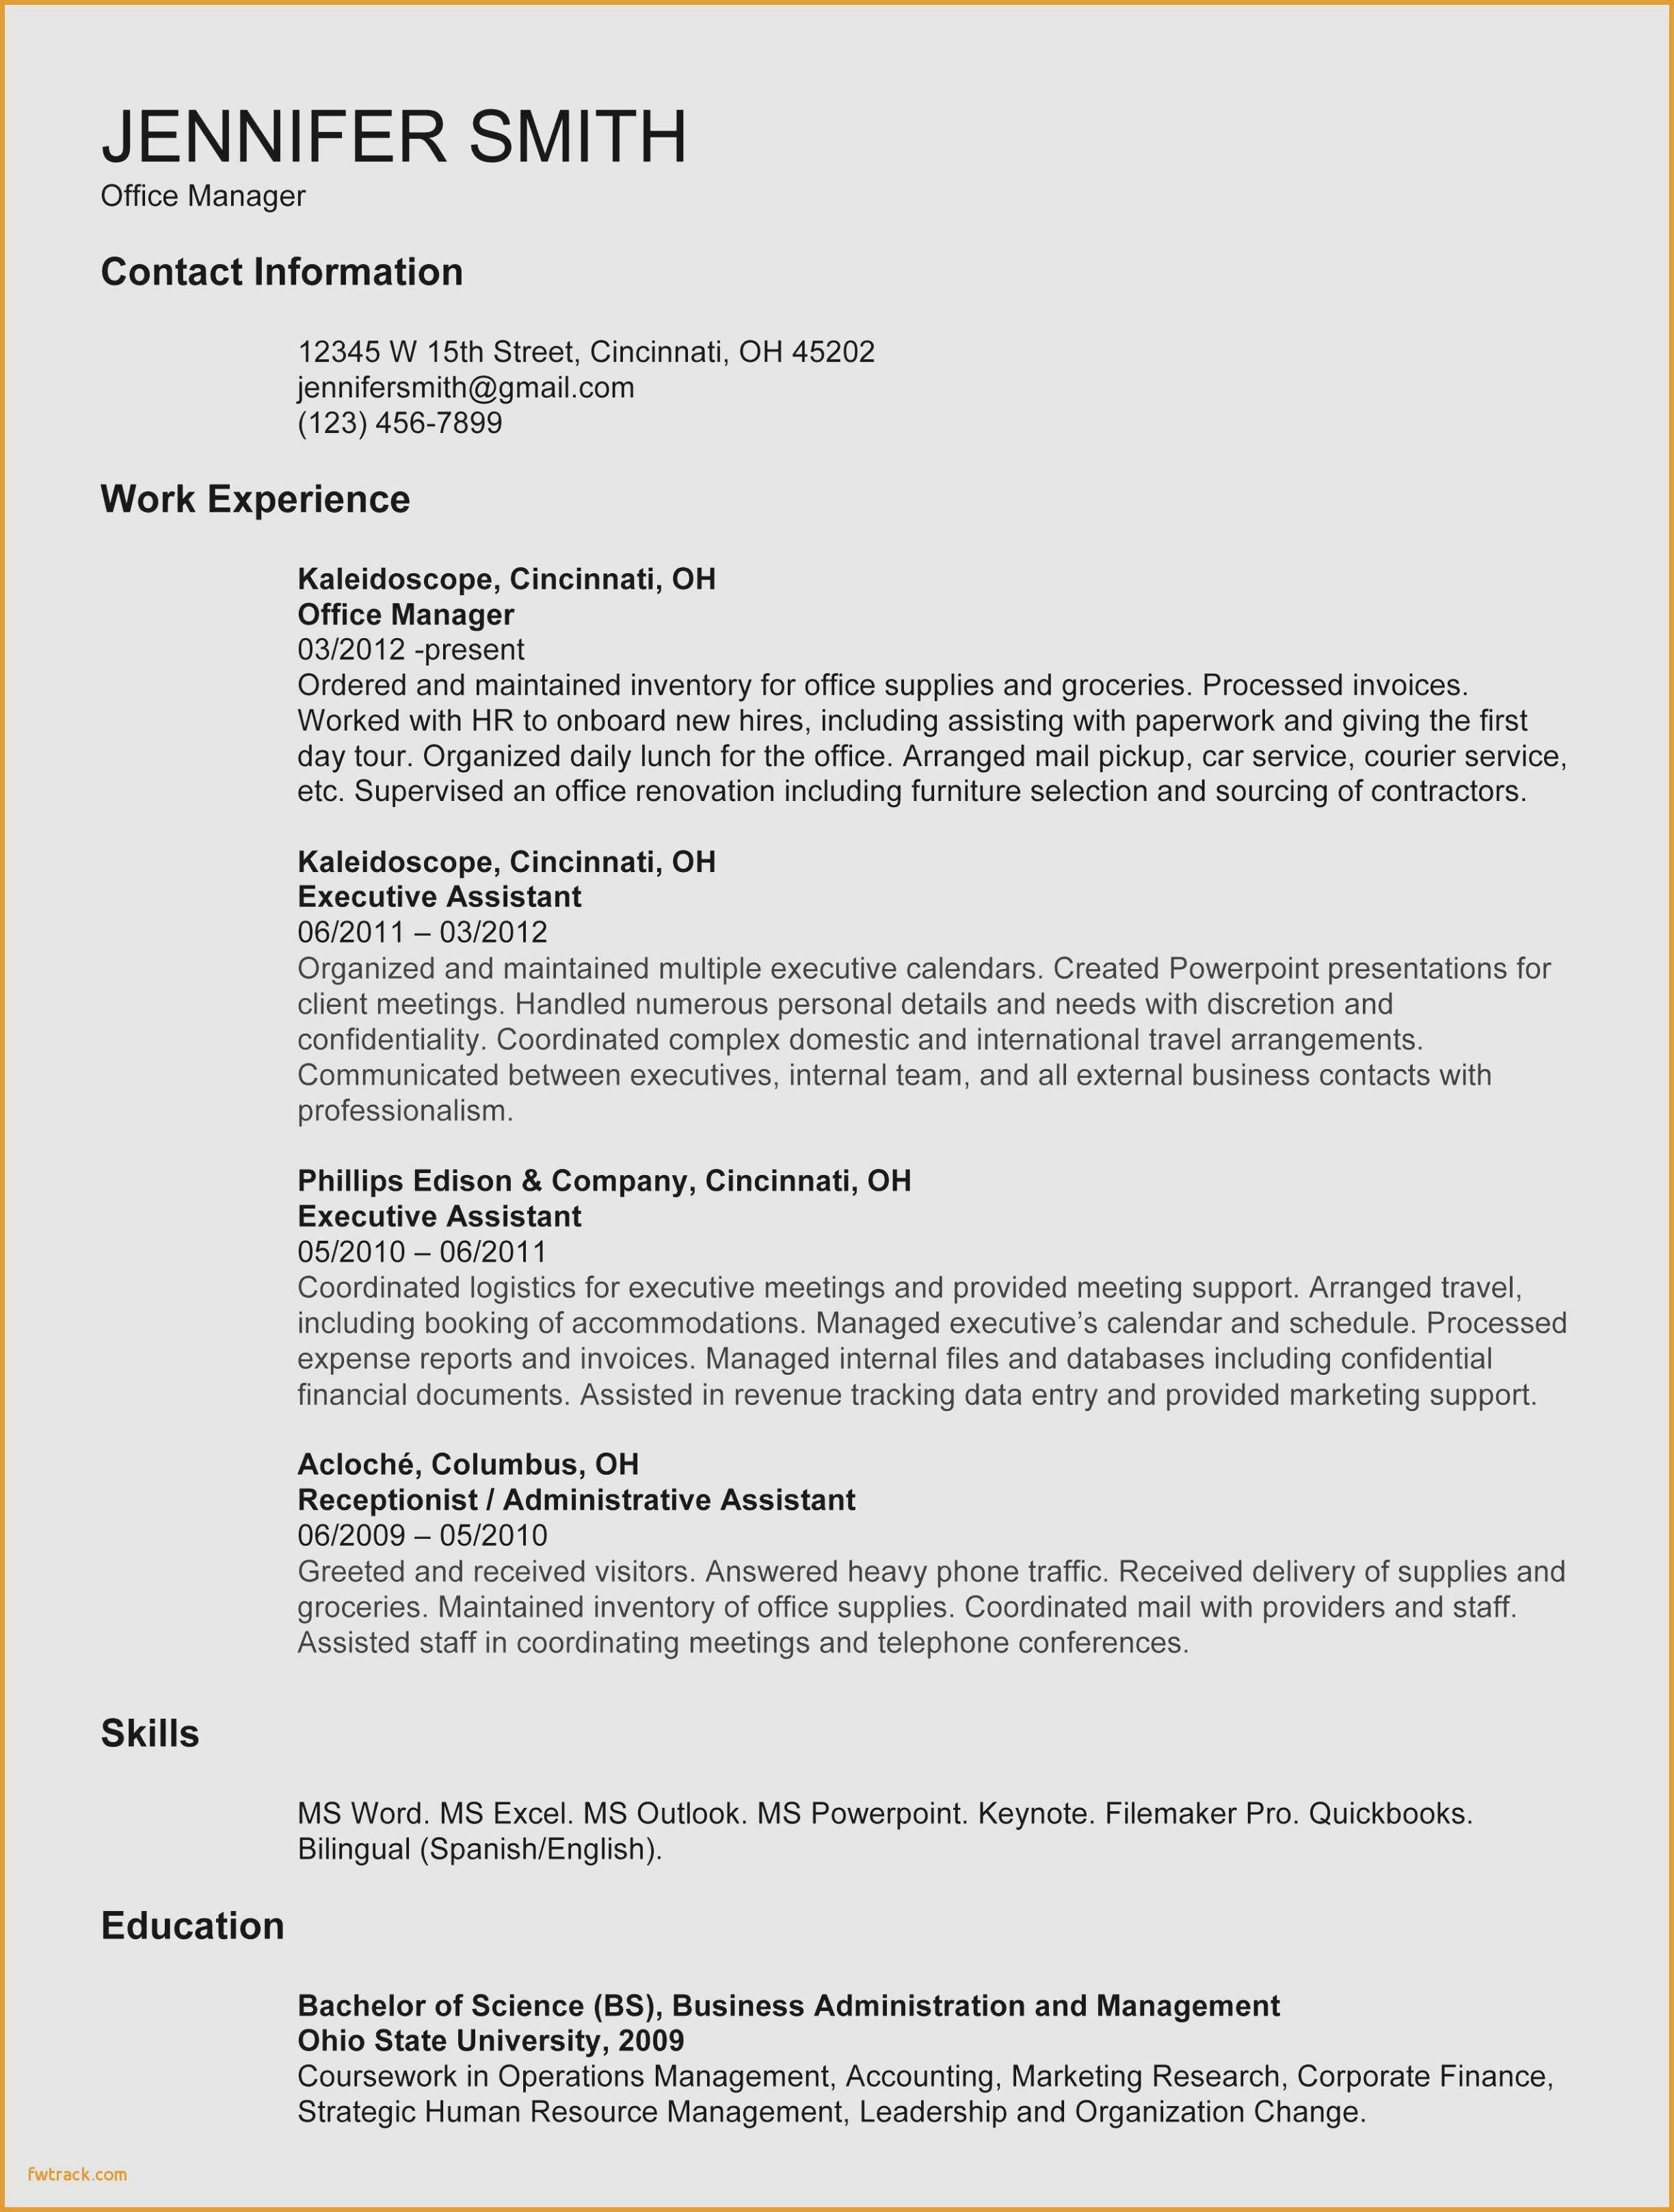 Undergraduate Resume Template Word Fresh Resume for College Student Template